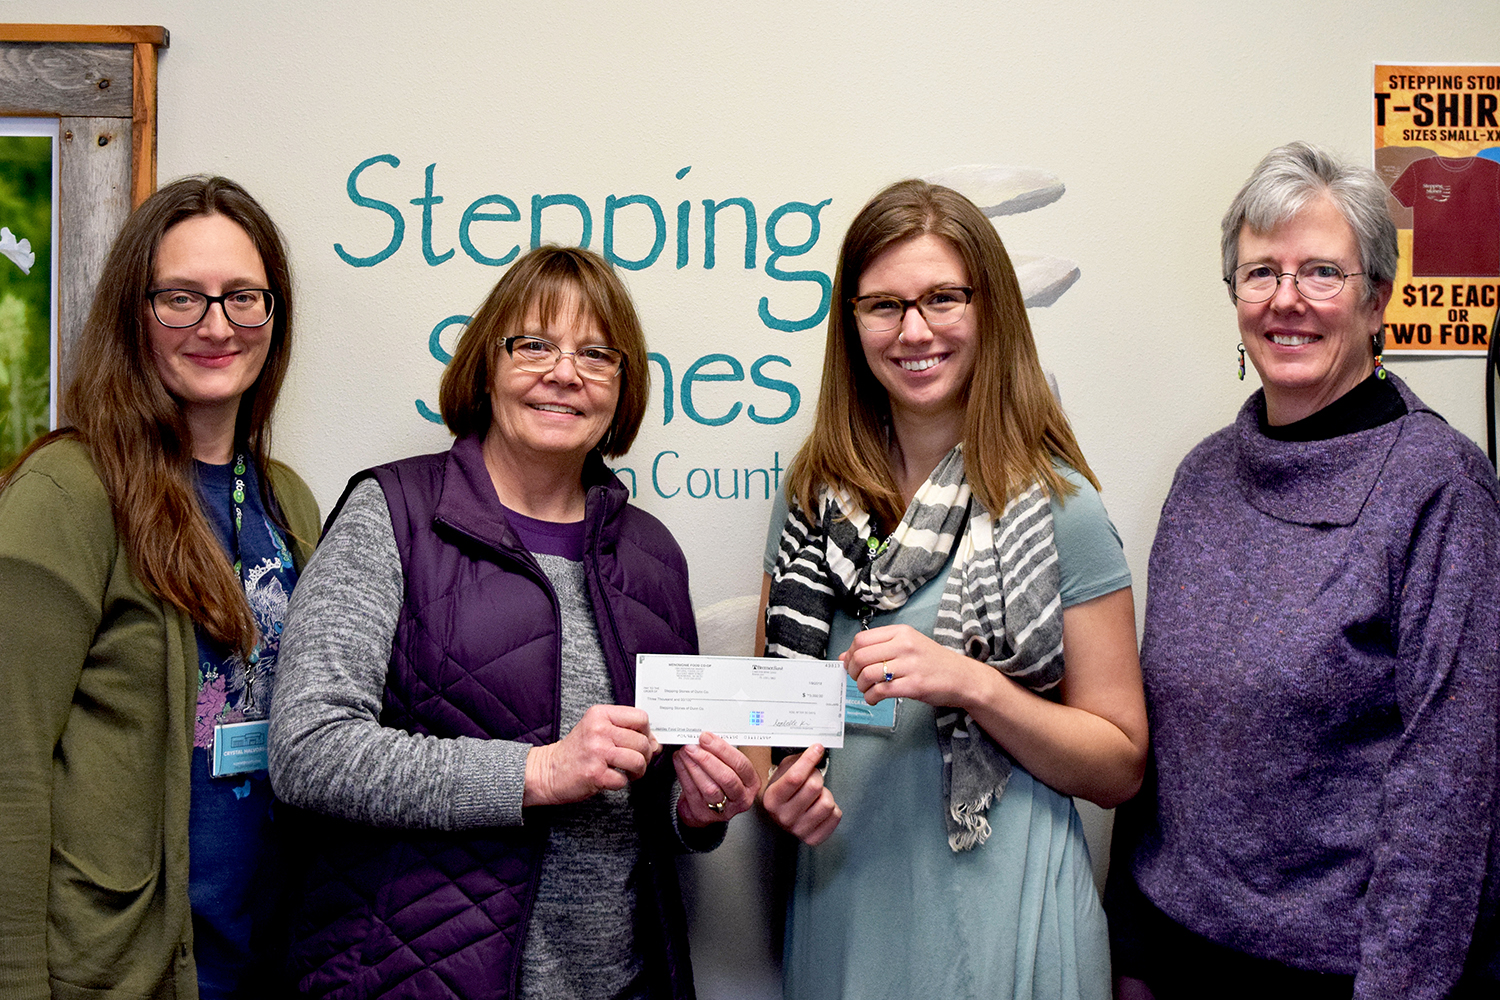 Donations to Stepping Stones Menomonie Wisconsin